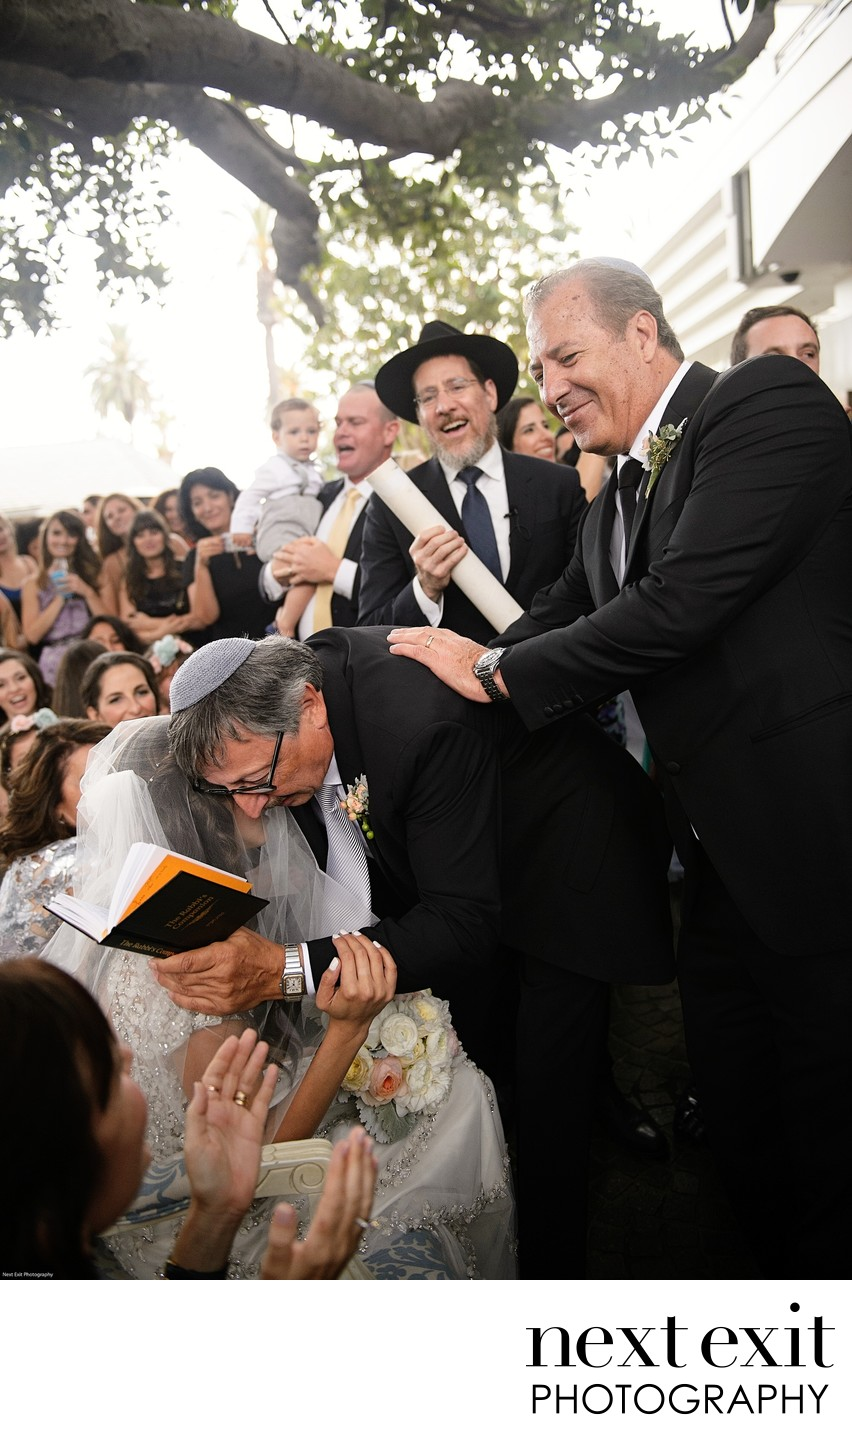 Best Los Angeles Orthodox Jewish Wedding Photographer - Los Angeles Wedding, Mitzvah & Portrait Photographer - Next Exit Photography